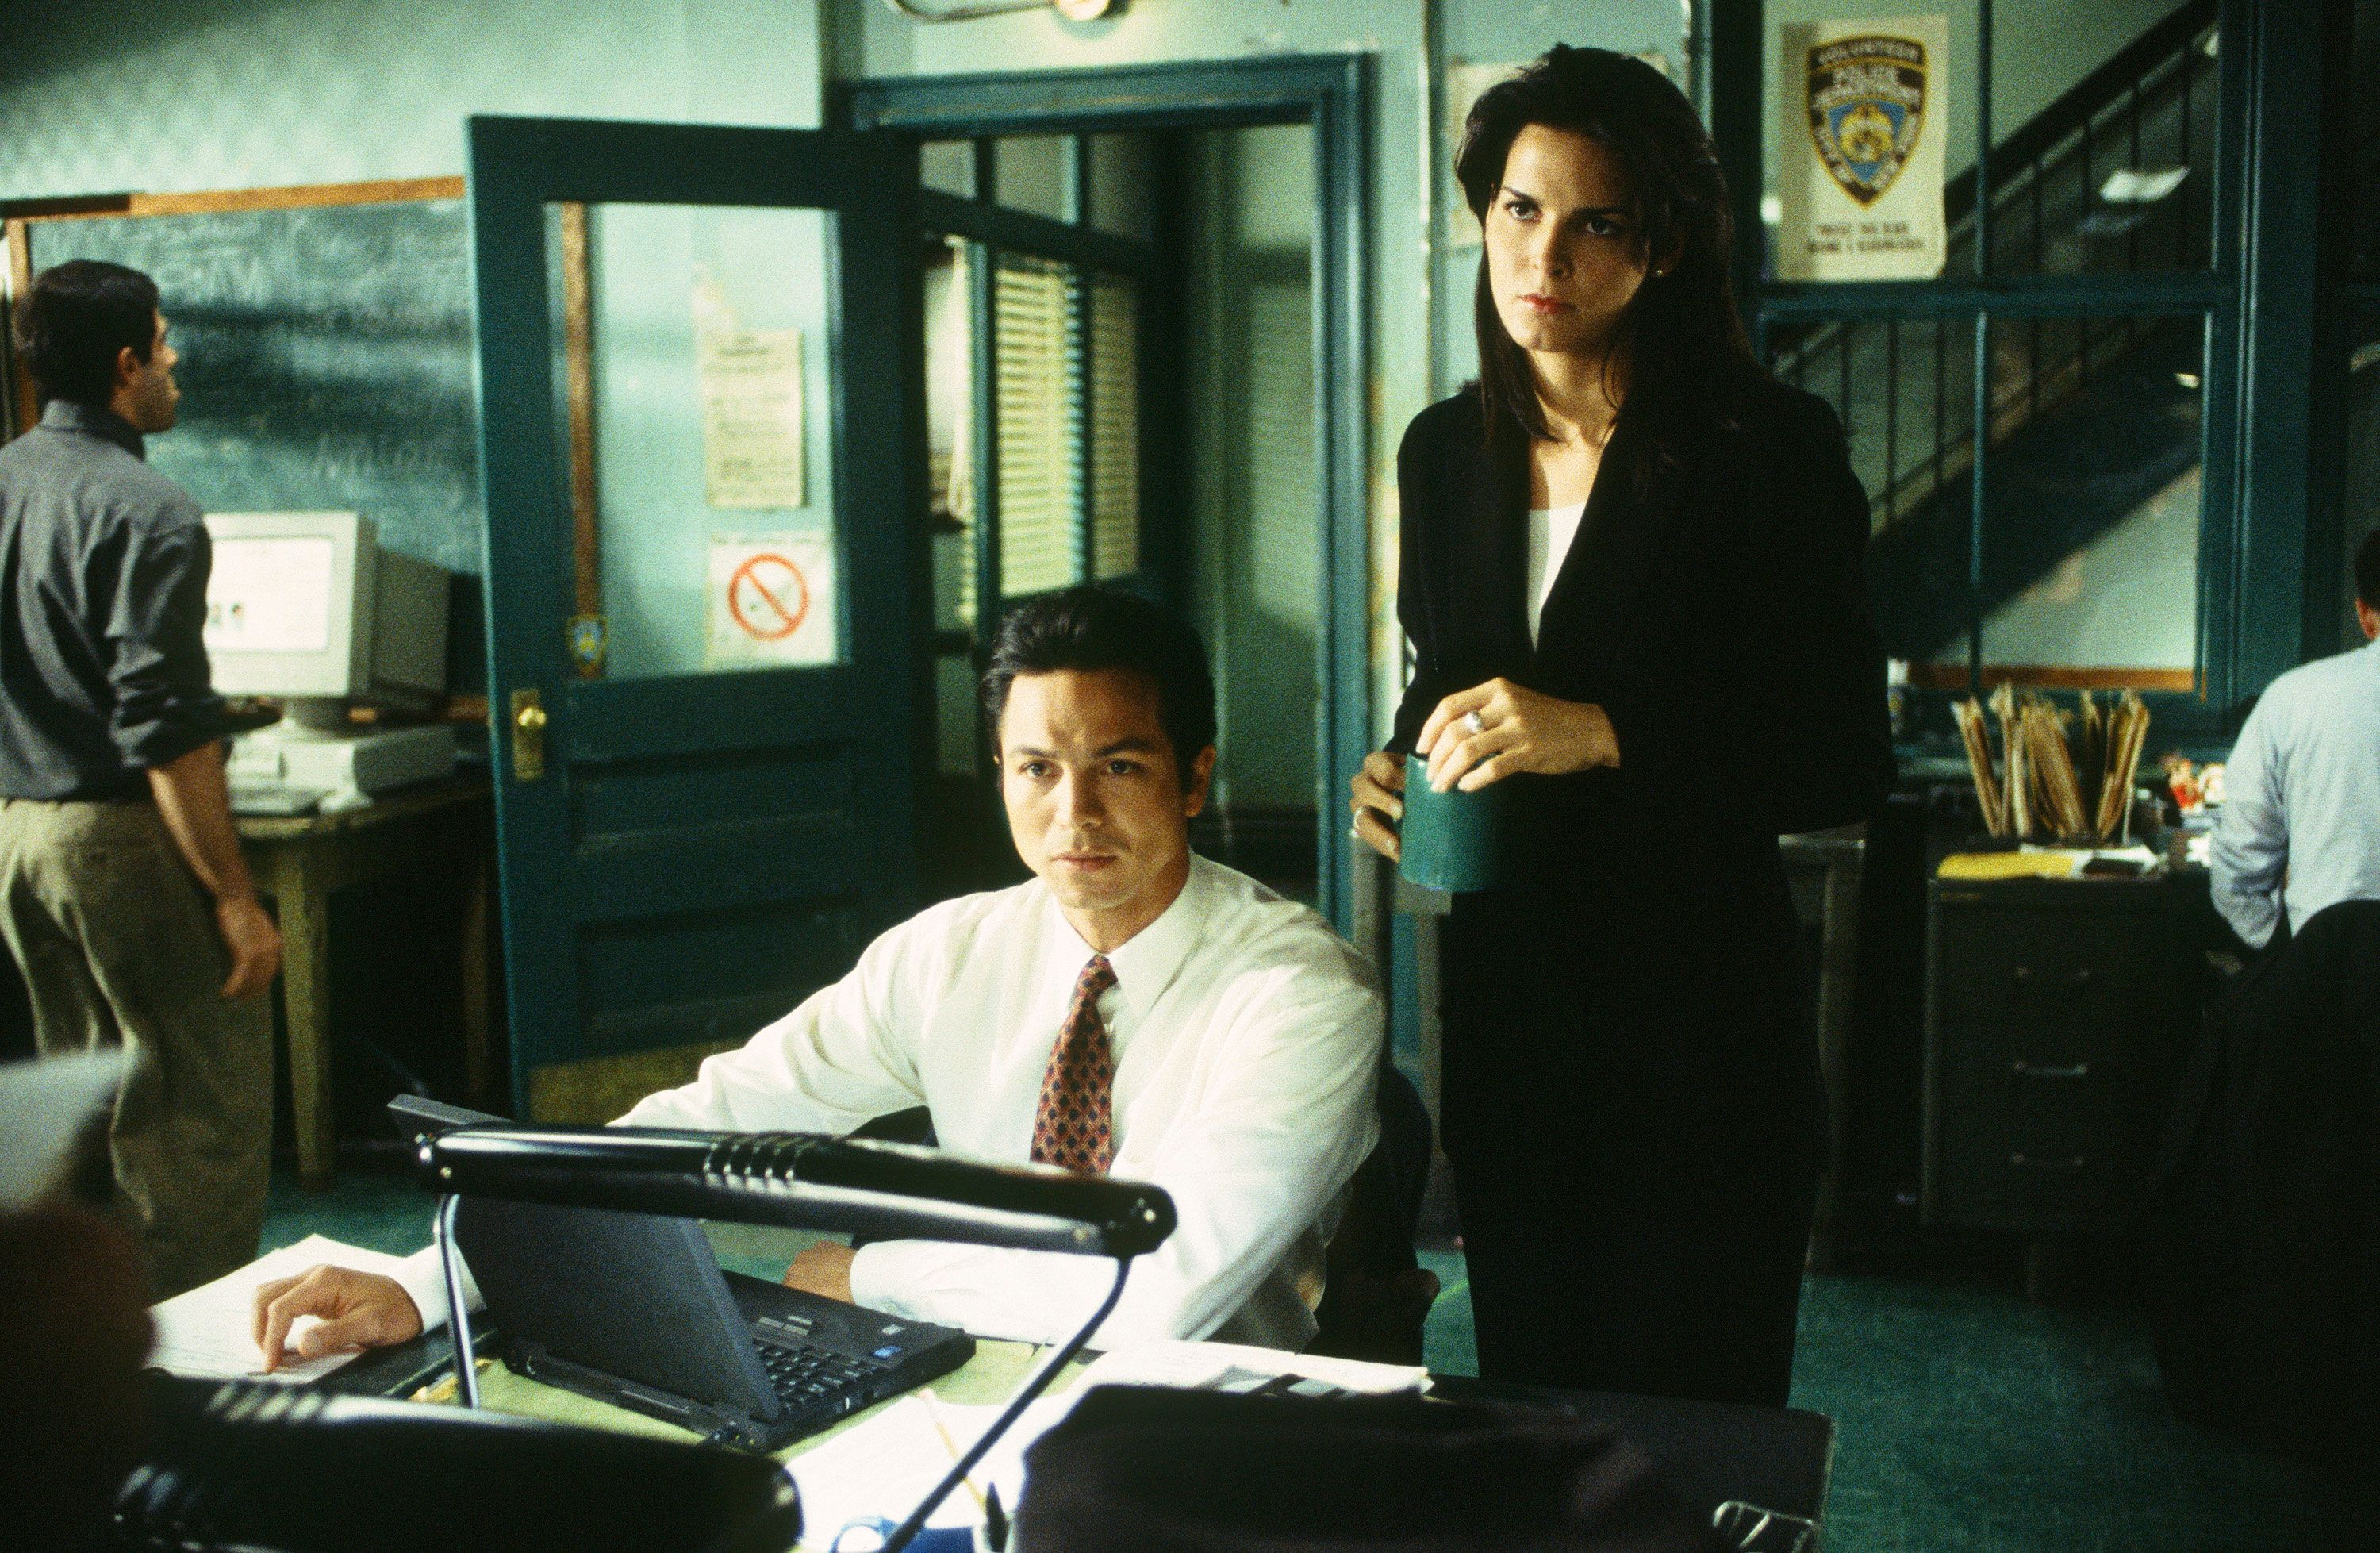 LAW & ORDER -- 'Refuge: Part 1&2' Episodes 23/24 -- Air Date 05/26/1999 -- Pictured: (l-r) Benjamin Bratt as Detective Rey Curtis, Angie Harmon as A.D.A. Abbie Carmichael  (Photo by Jessica Burstein/NBC/NBCU Photo Bank via Getty Images)